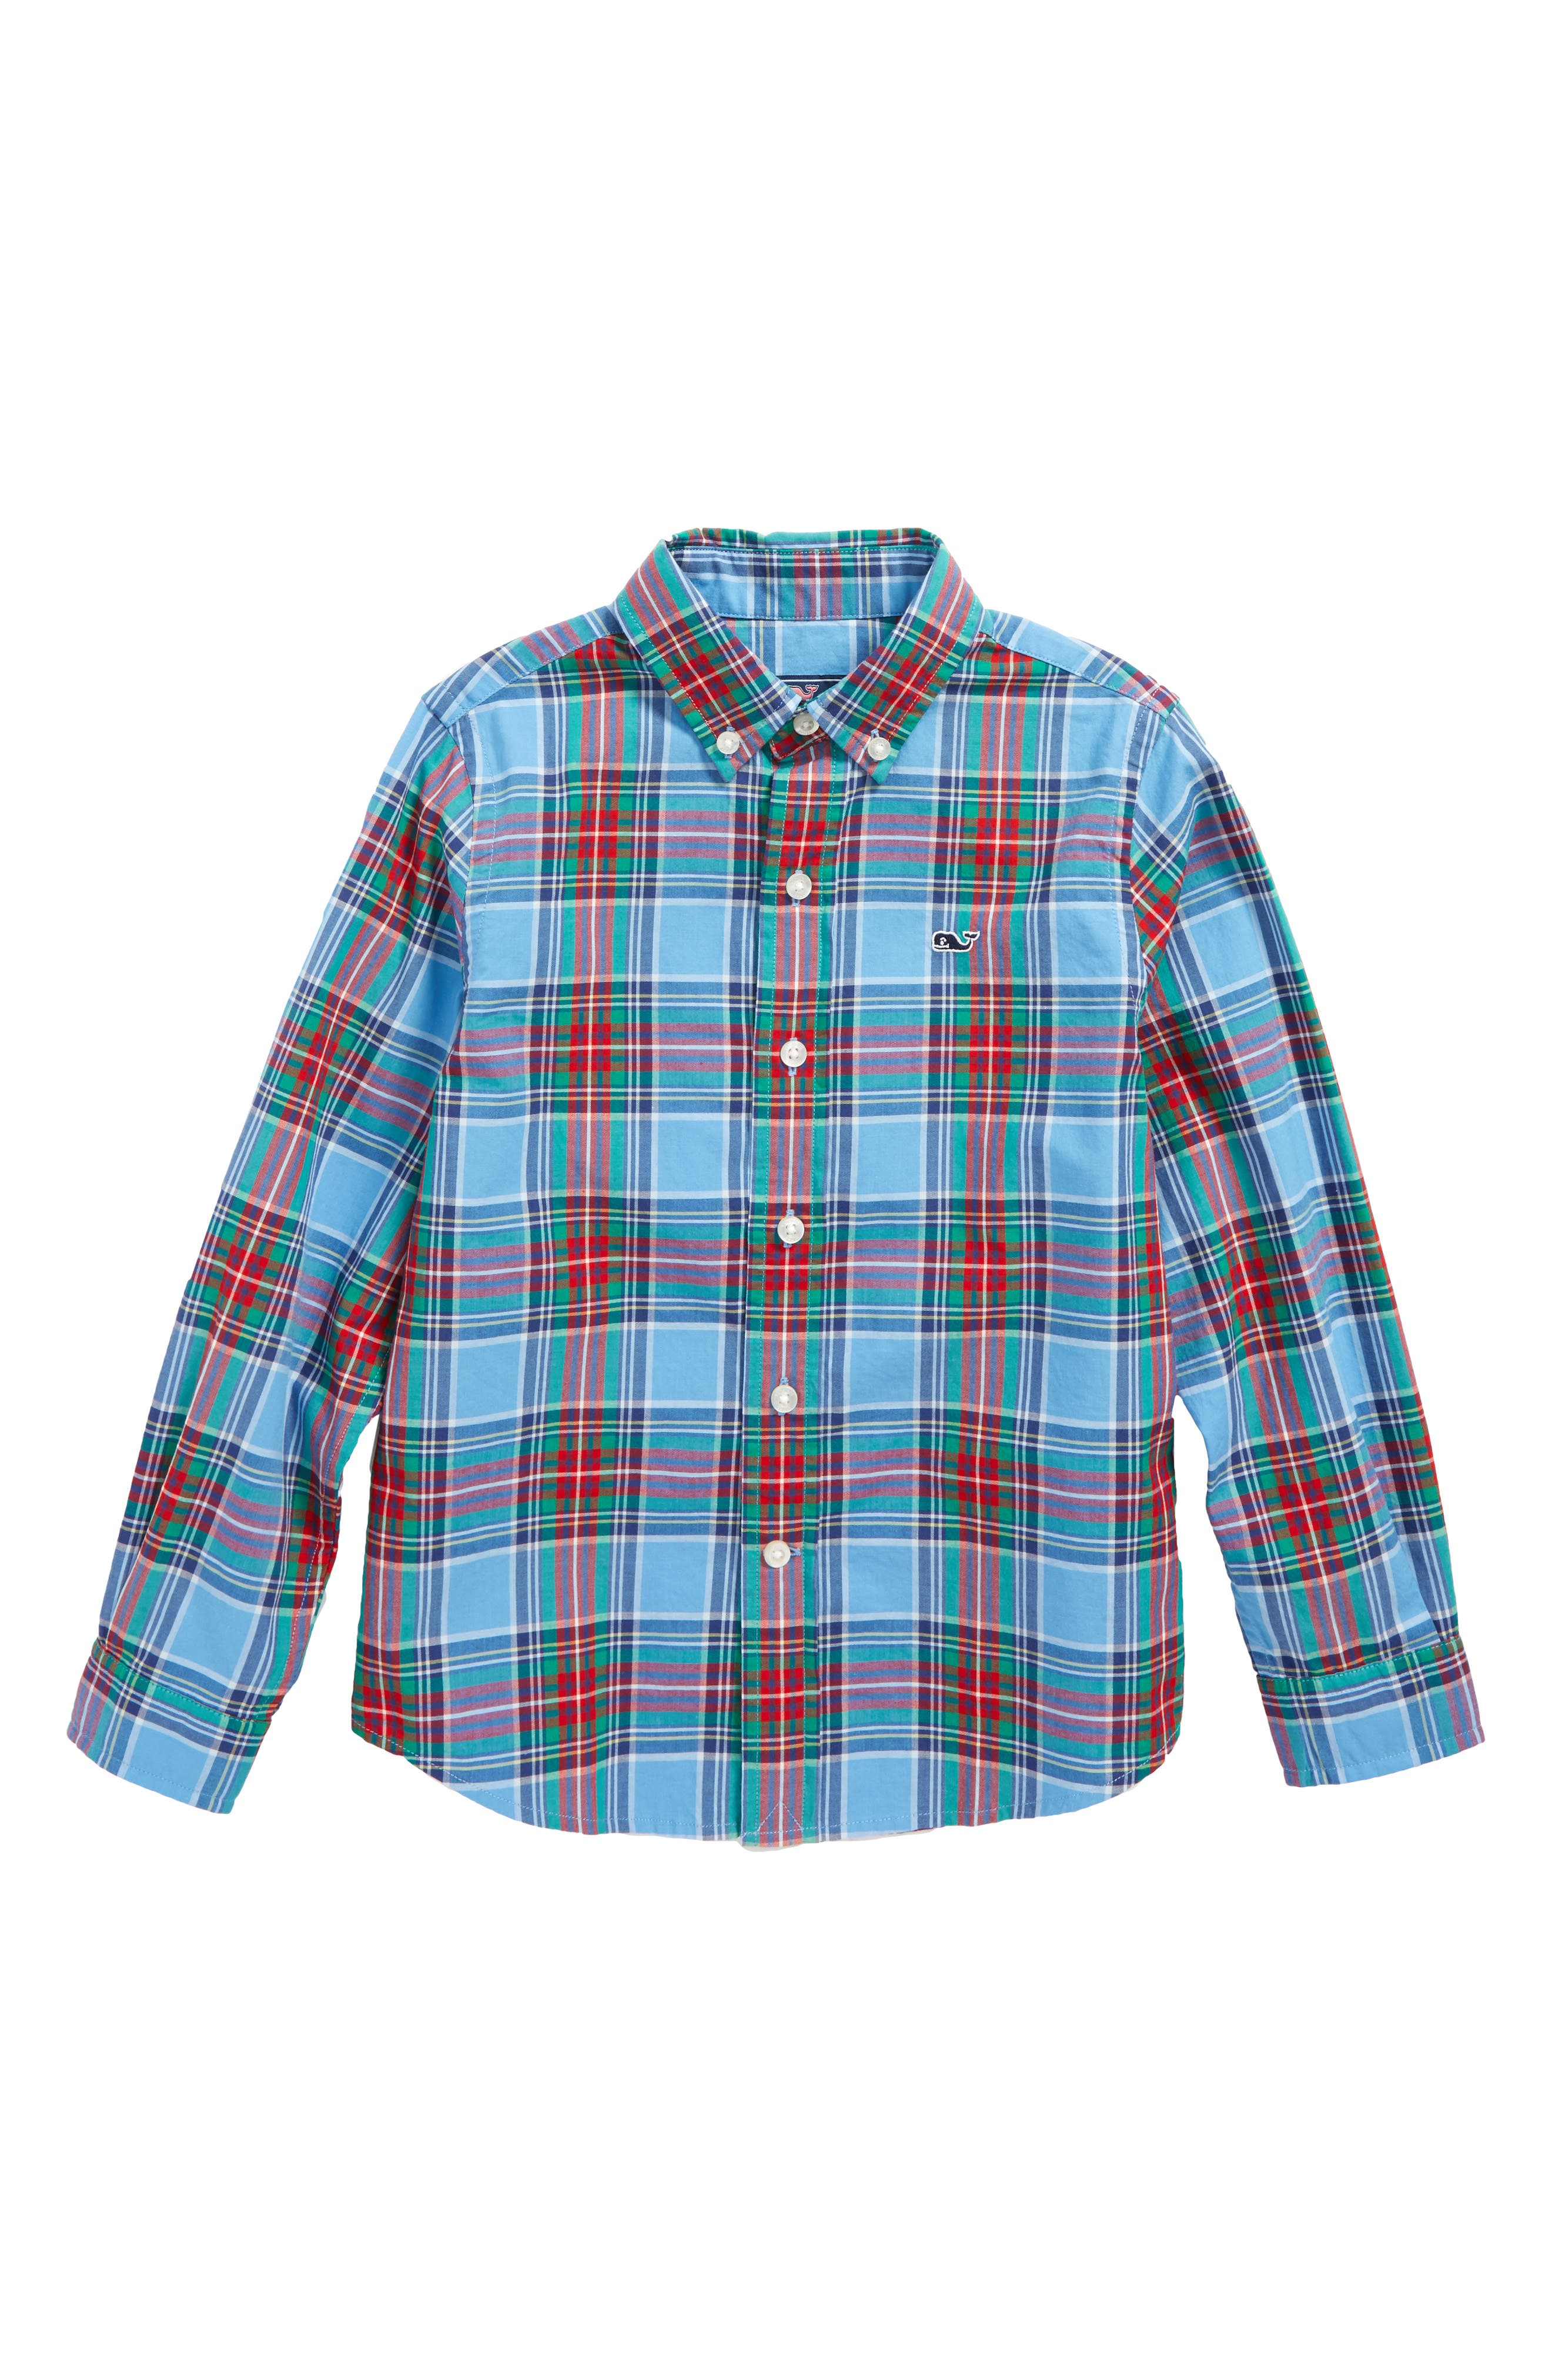 Belmont Plaid Whale Shirt,                             Main thumbnail 1, color,                             Dockside Blue